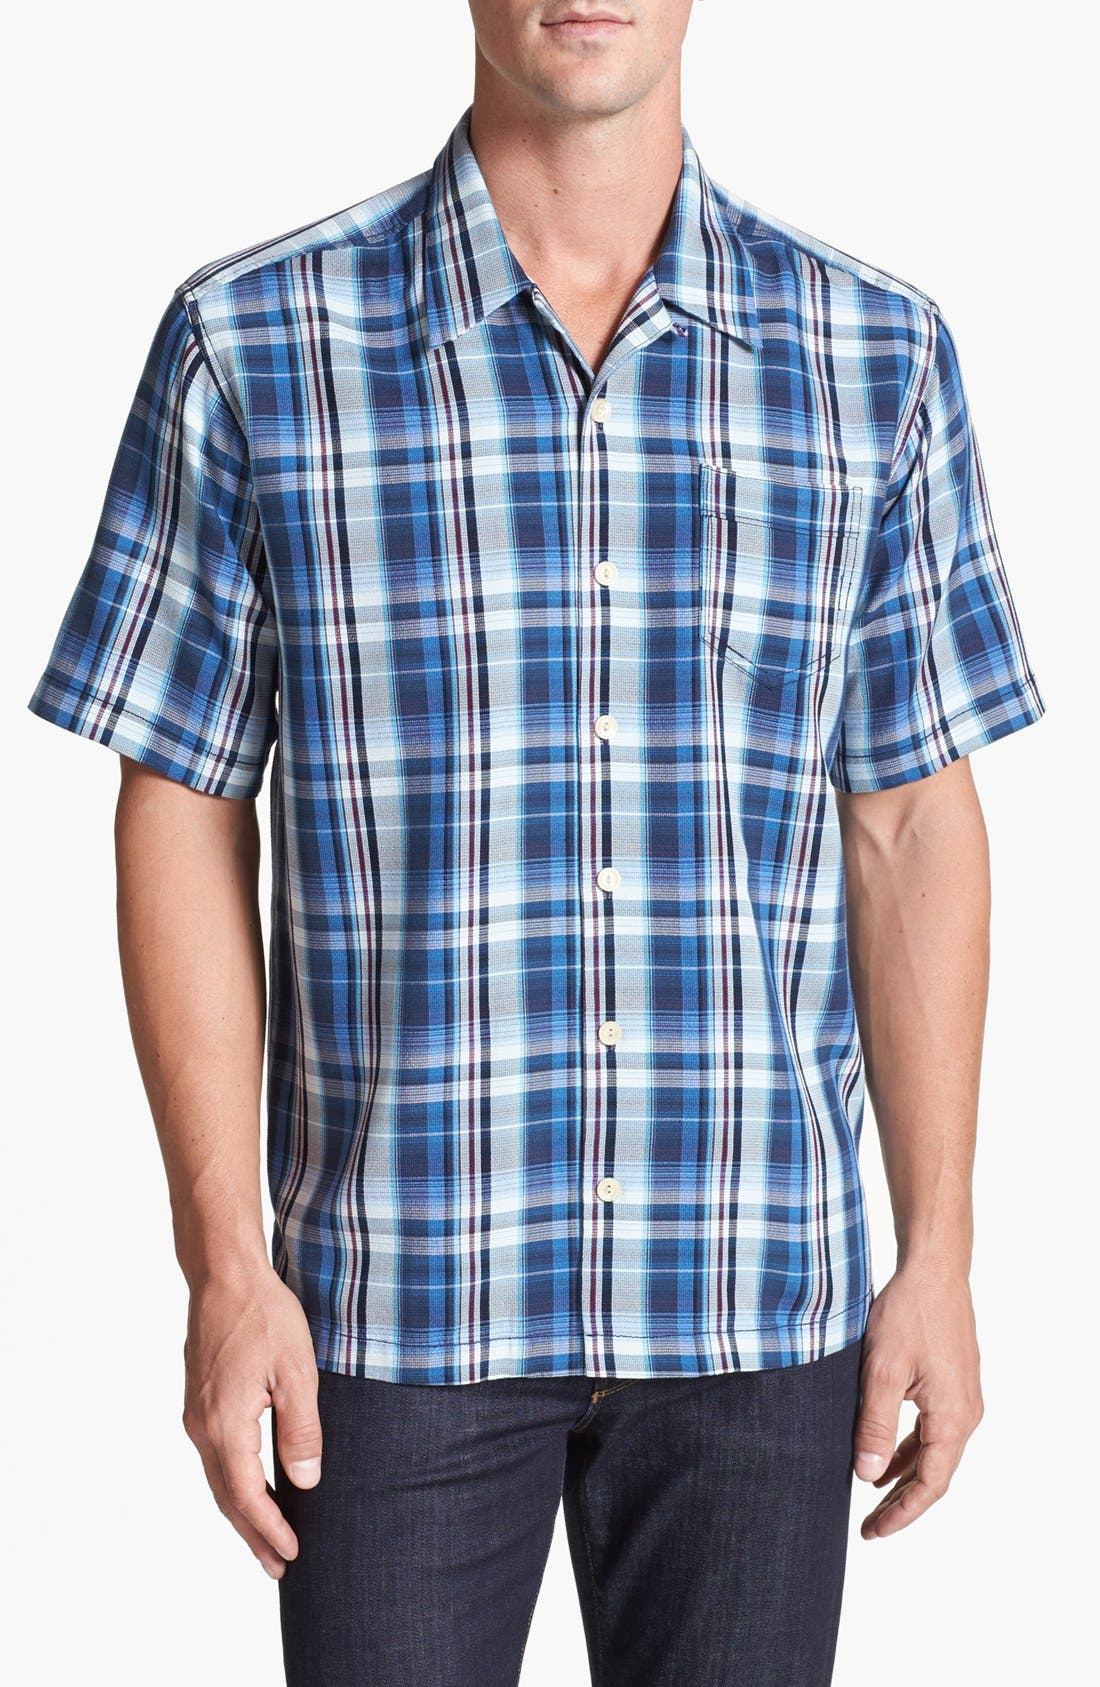 Alternate Image 1 Selected - Tommy Bahama 'Ocean Abyss' Silk Campshirt (Big & Tall)